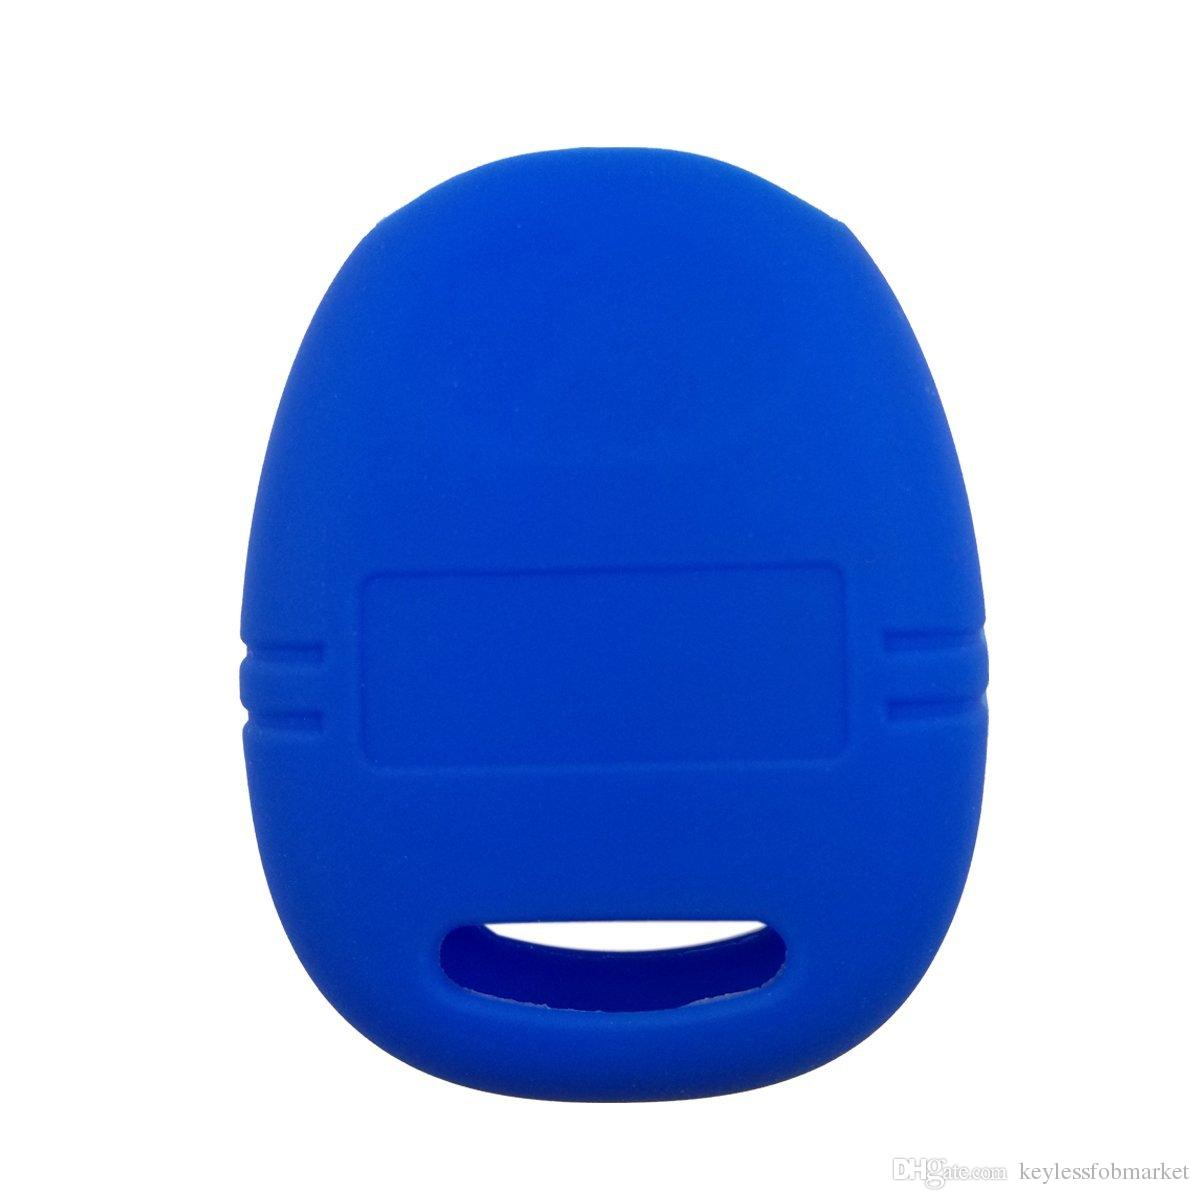 SEGADEN Silicone Cover Protector Case Skin Jacket fit for SAAB 9-3 9-5 4 Button Remote Key Fob CV2760 Light Blue